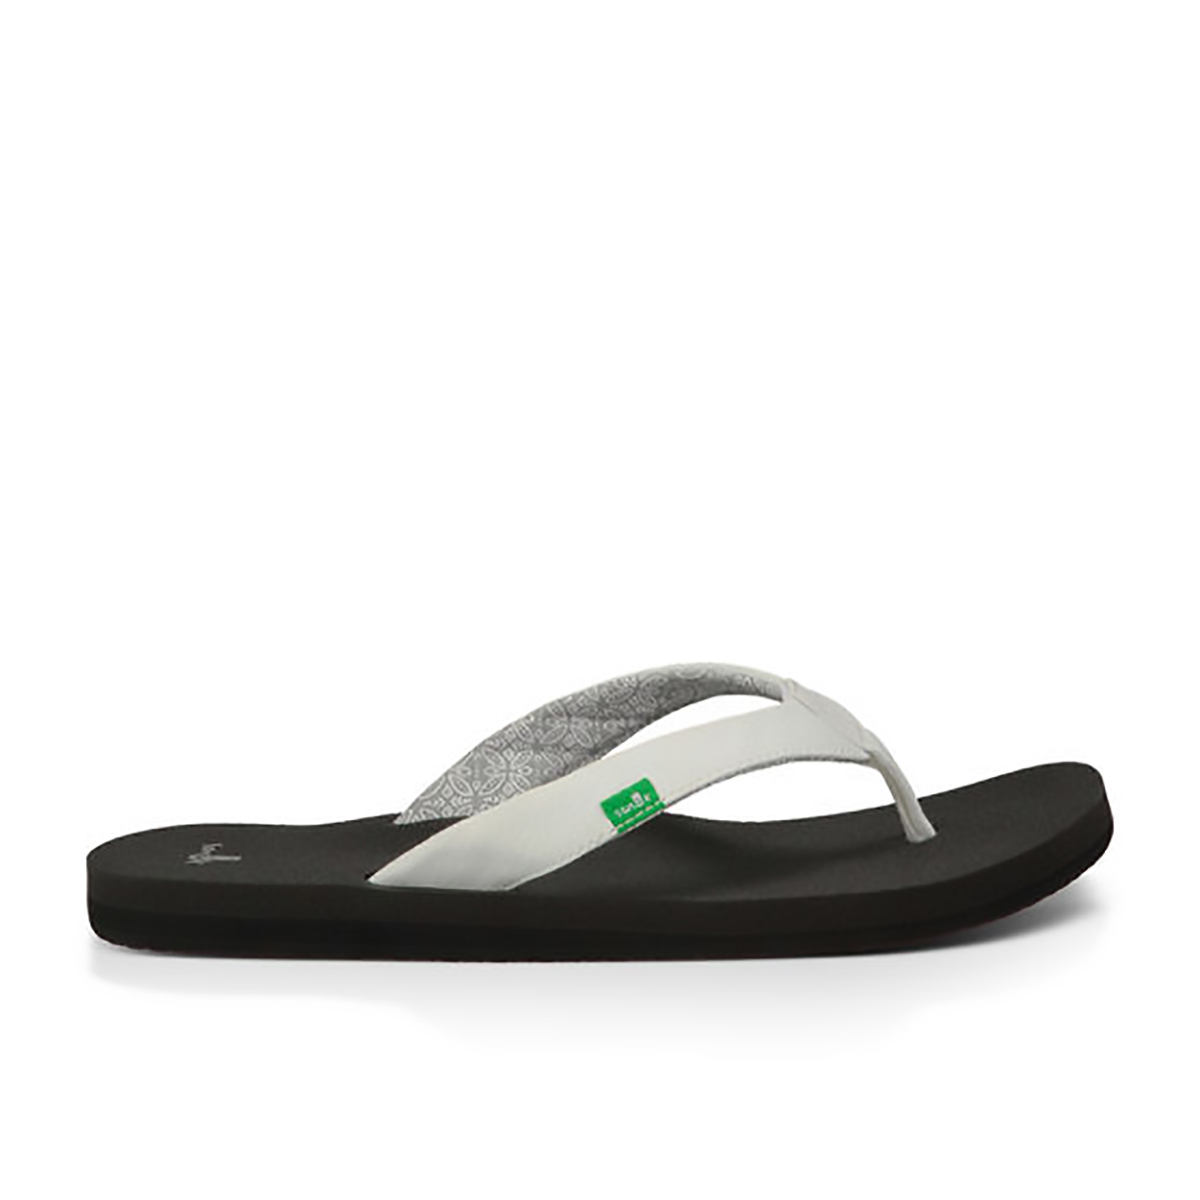 Sanuk Yoga Shoes Amazon: Sanuk Yoga Zen Women's Flip-Flops